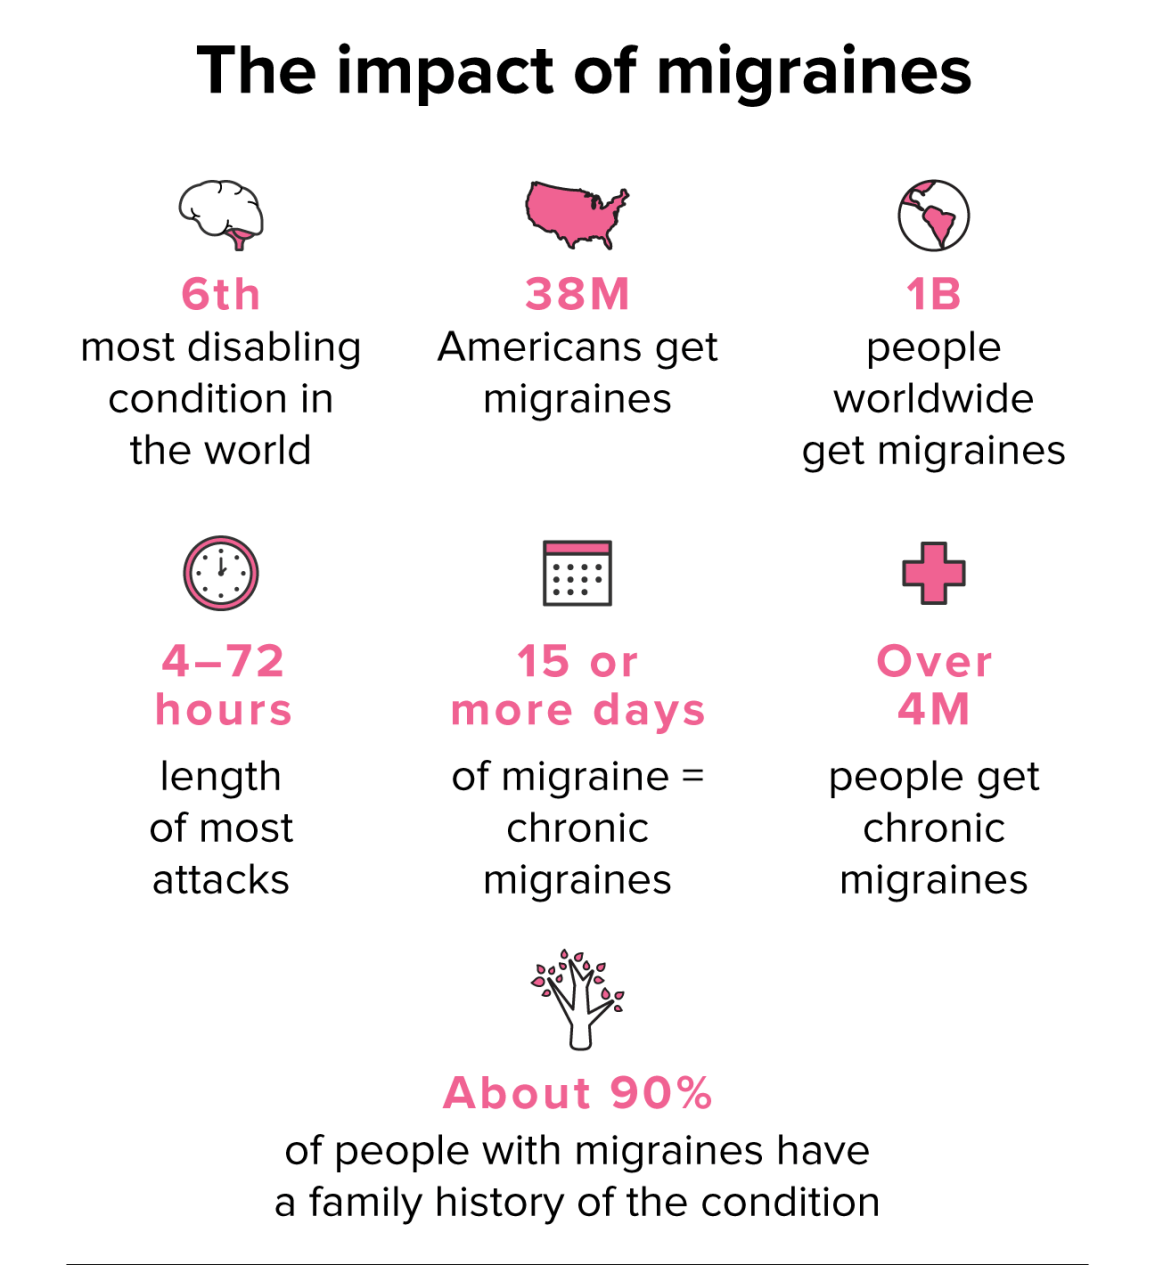 impact of migraines